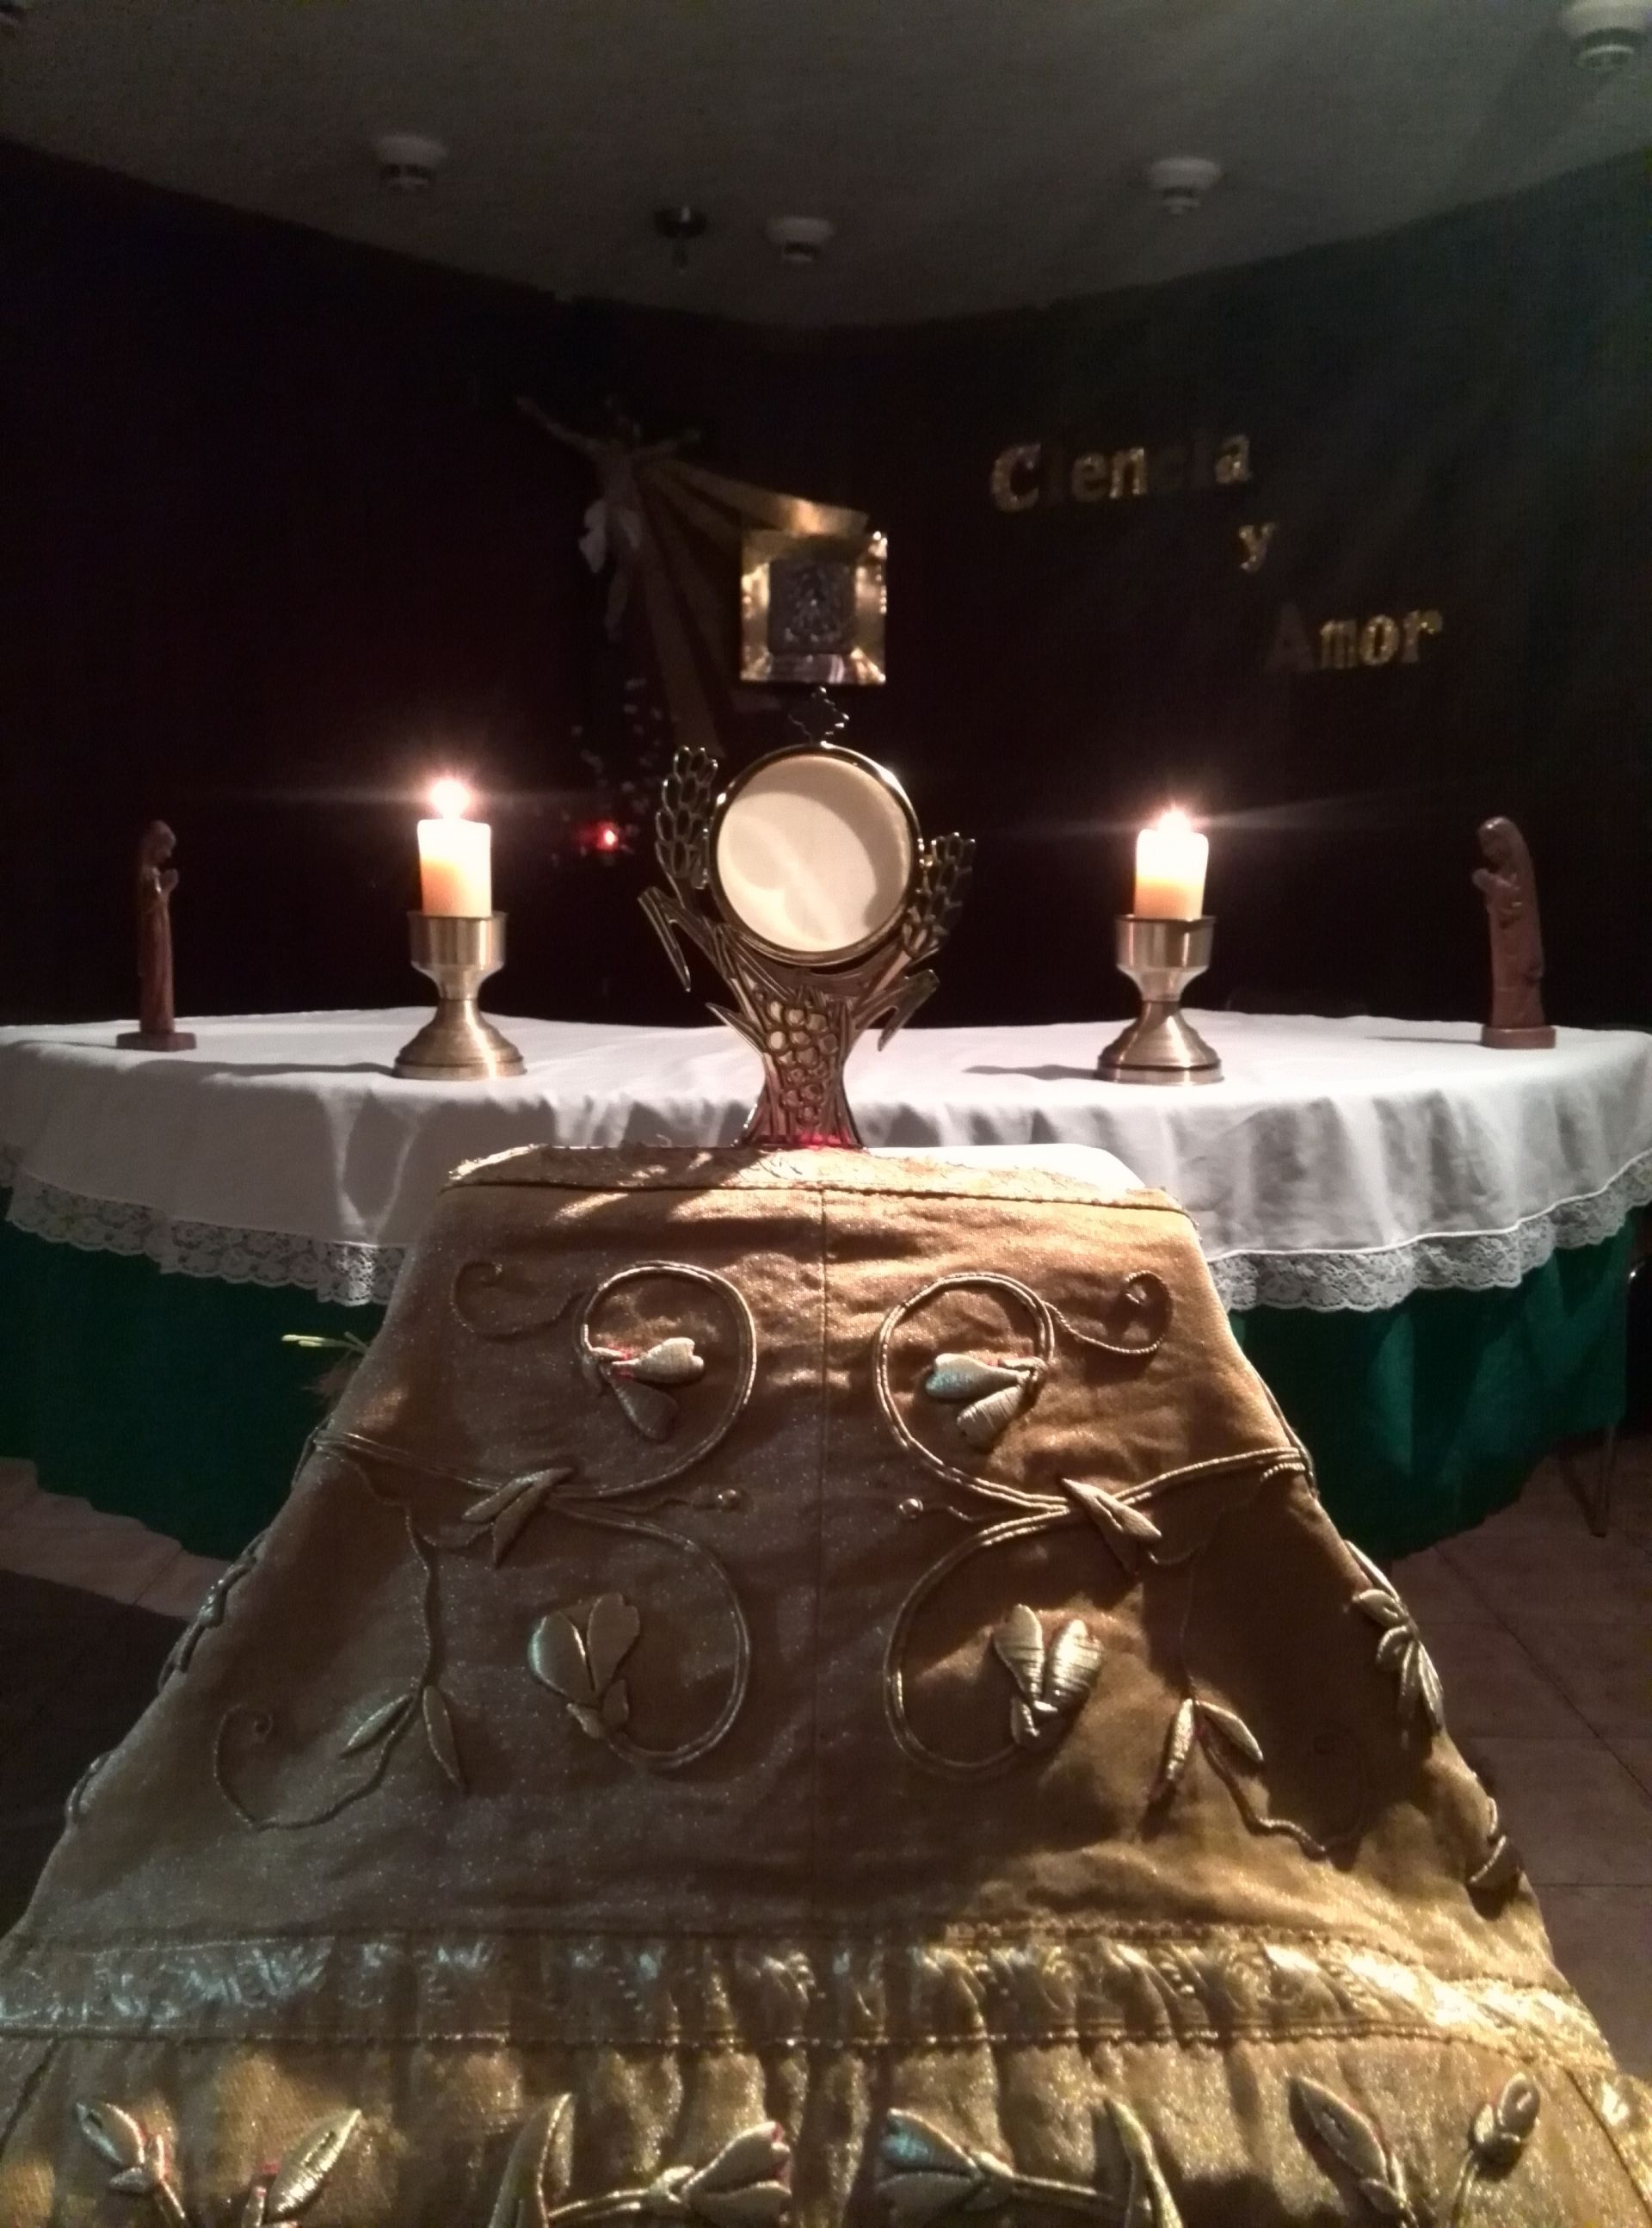 light, candles, santisimo sacramento, to illuminate, eucharistic adoration, jesus alive